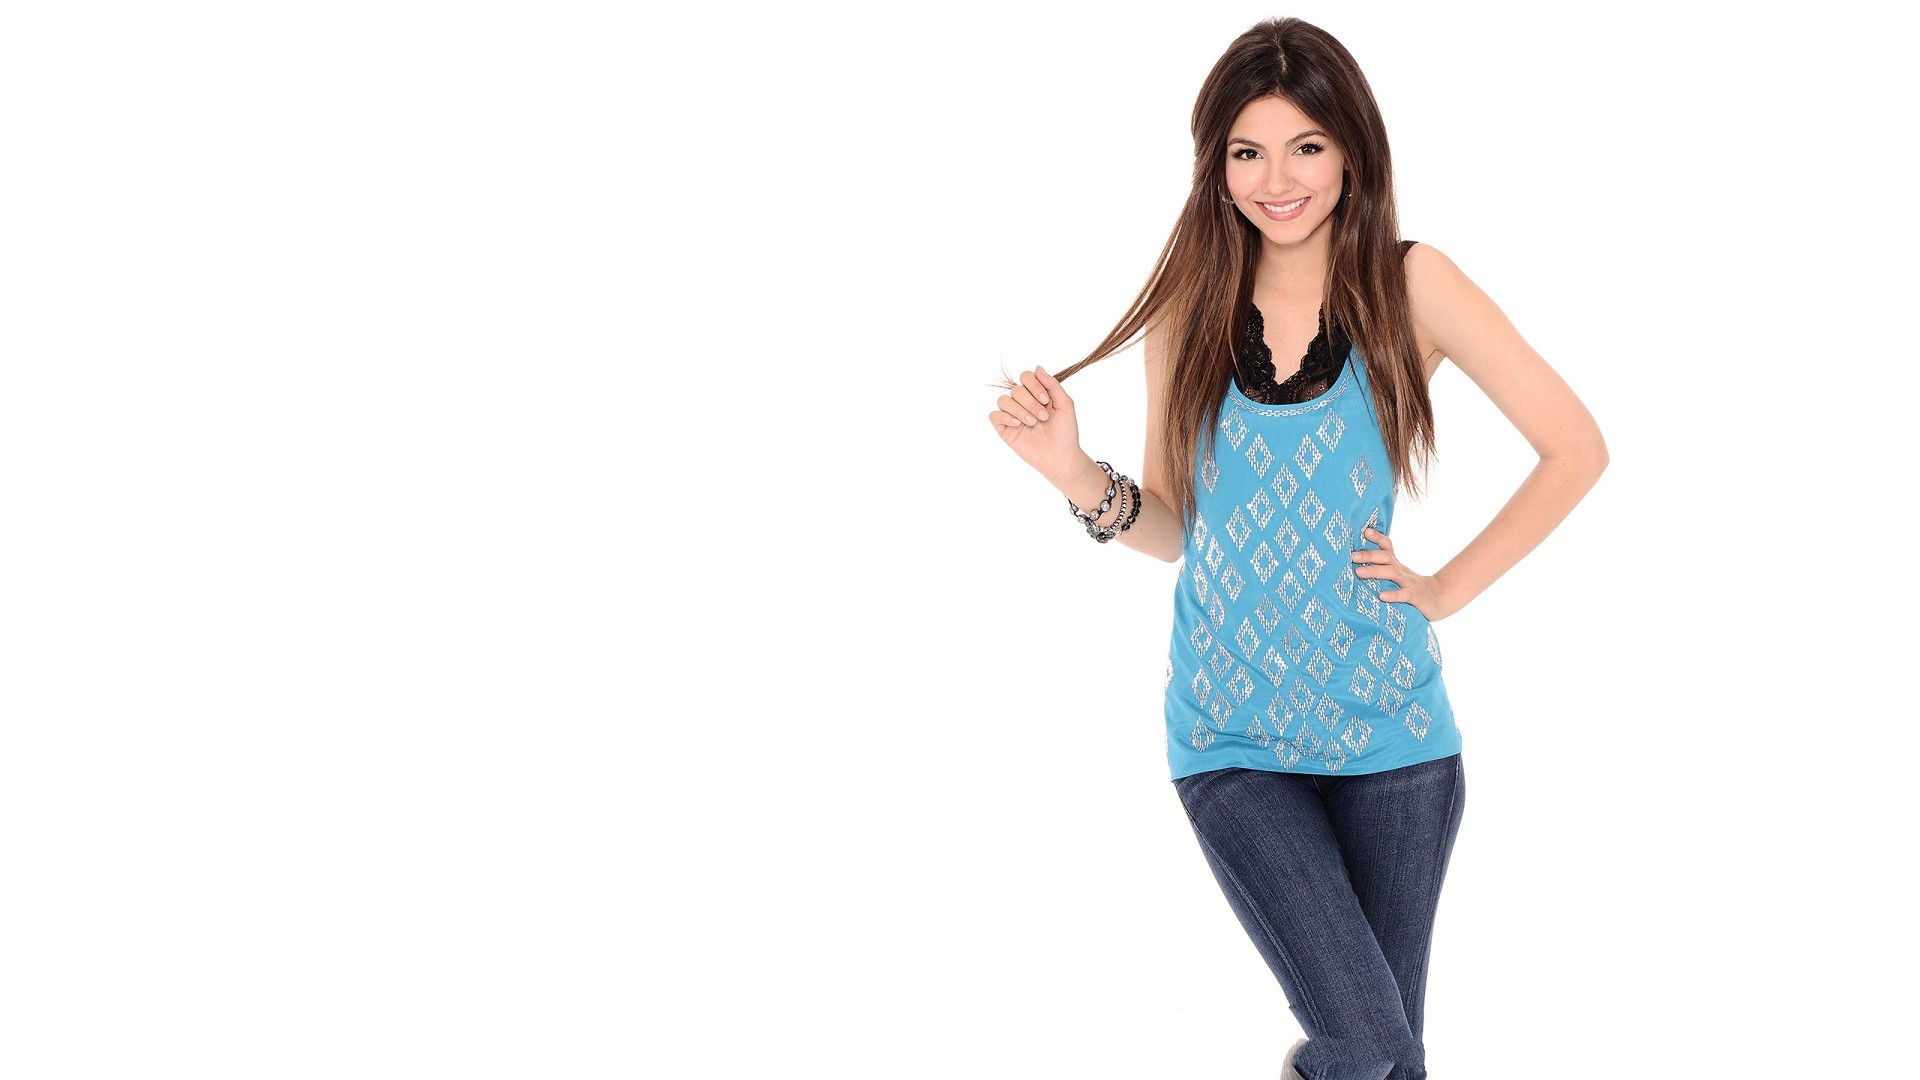 1920x1080 - Victoria Justice Wallpapers 14